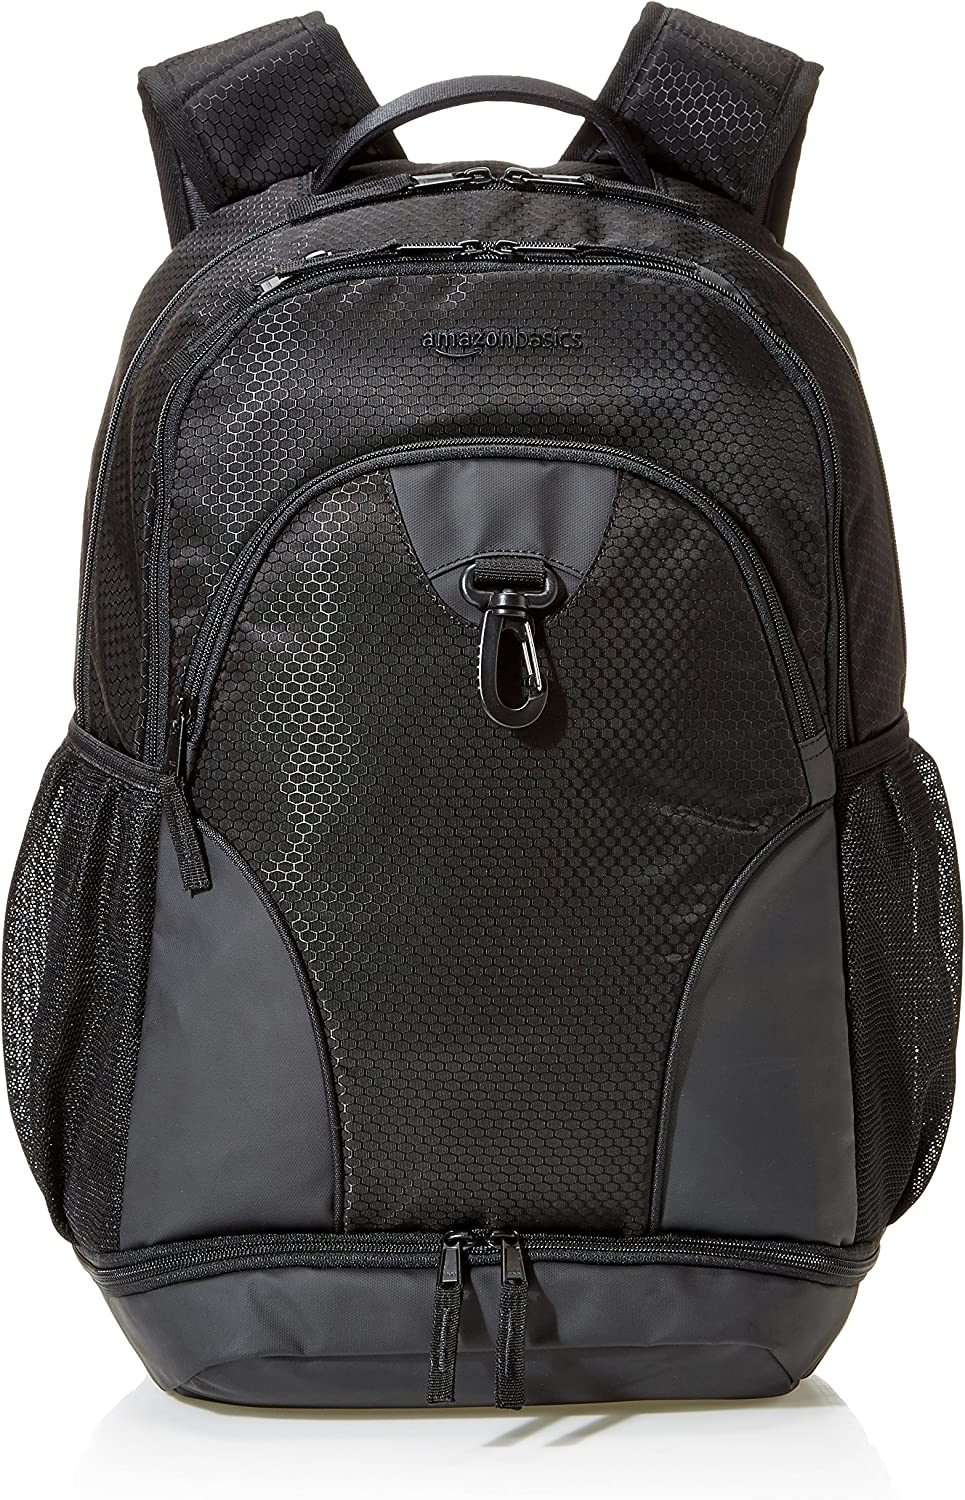 | Basics Sport Laptop Backpack - Black | Casual Daypacks